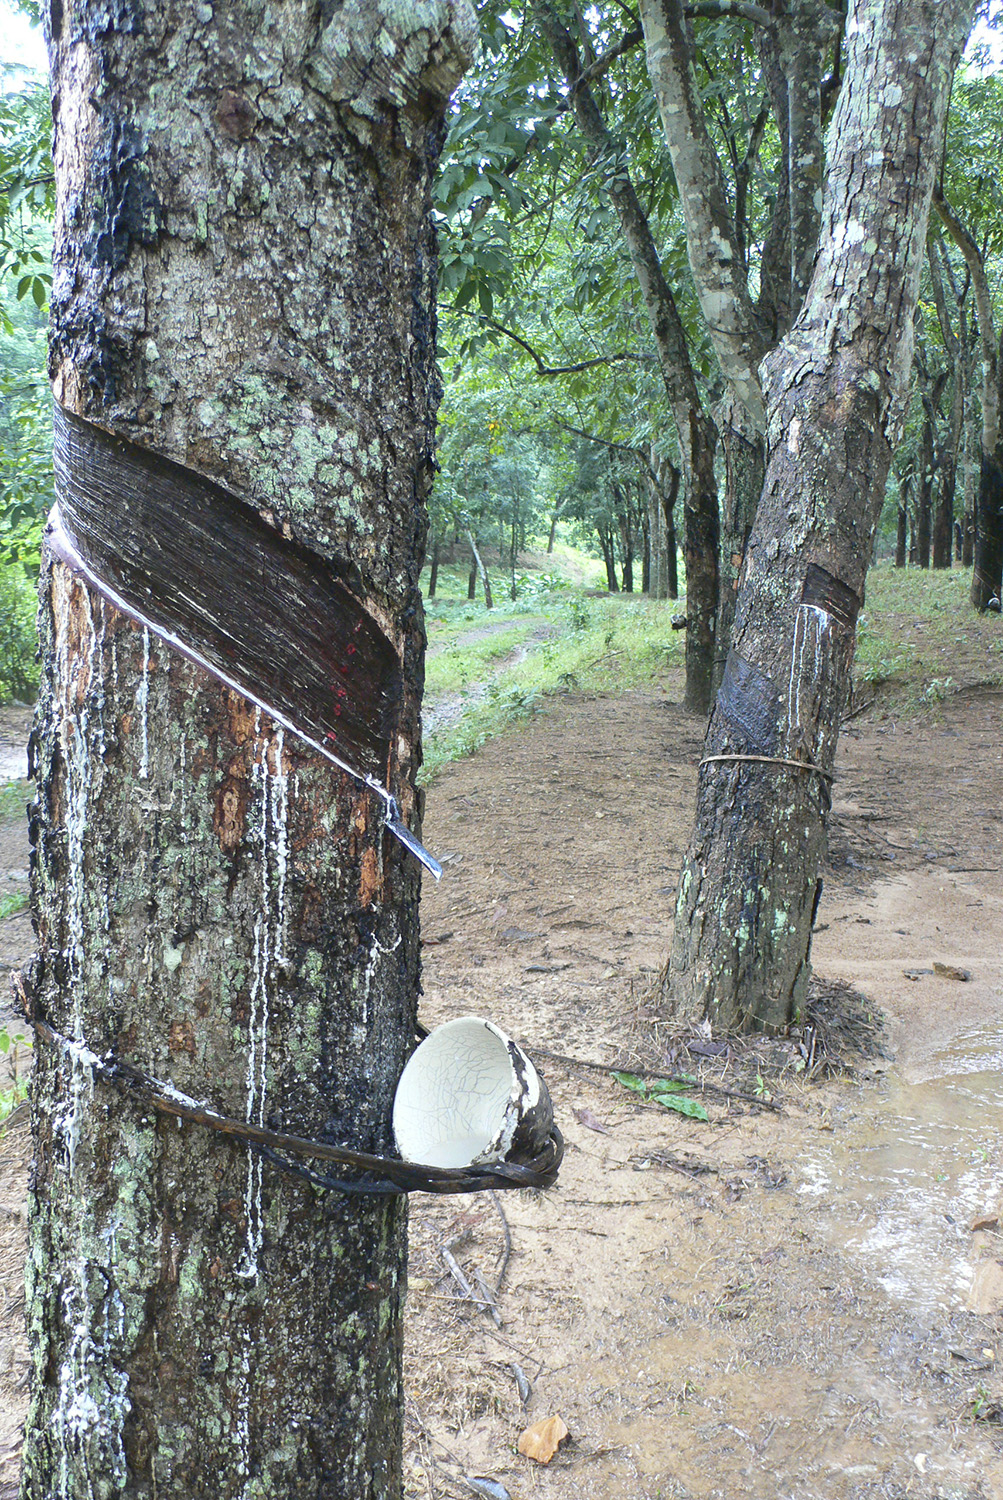 A rubber tree in a monoculture plantation in Hainan, China. (Image: Chris Colvin)